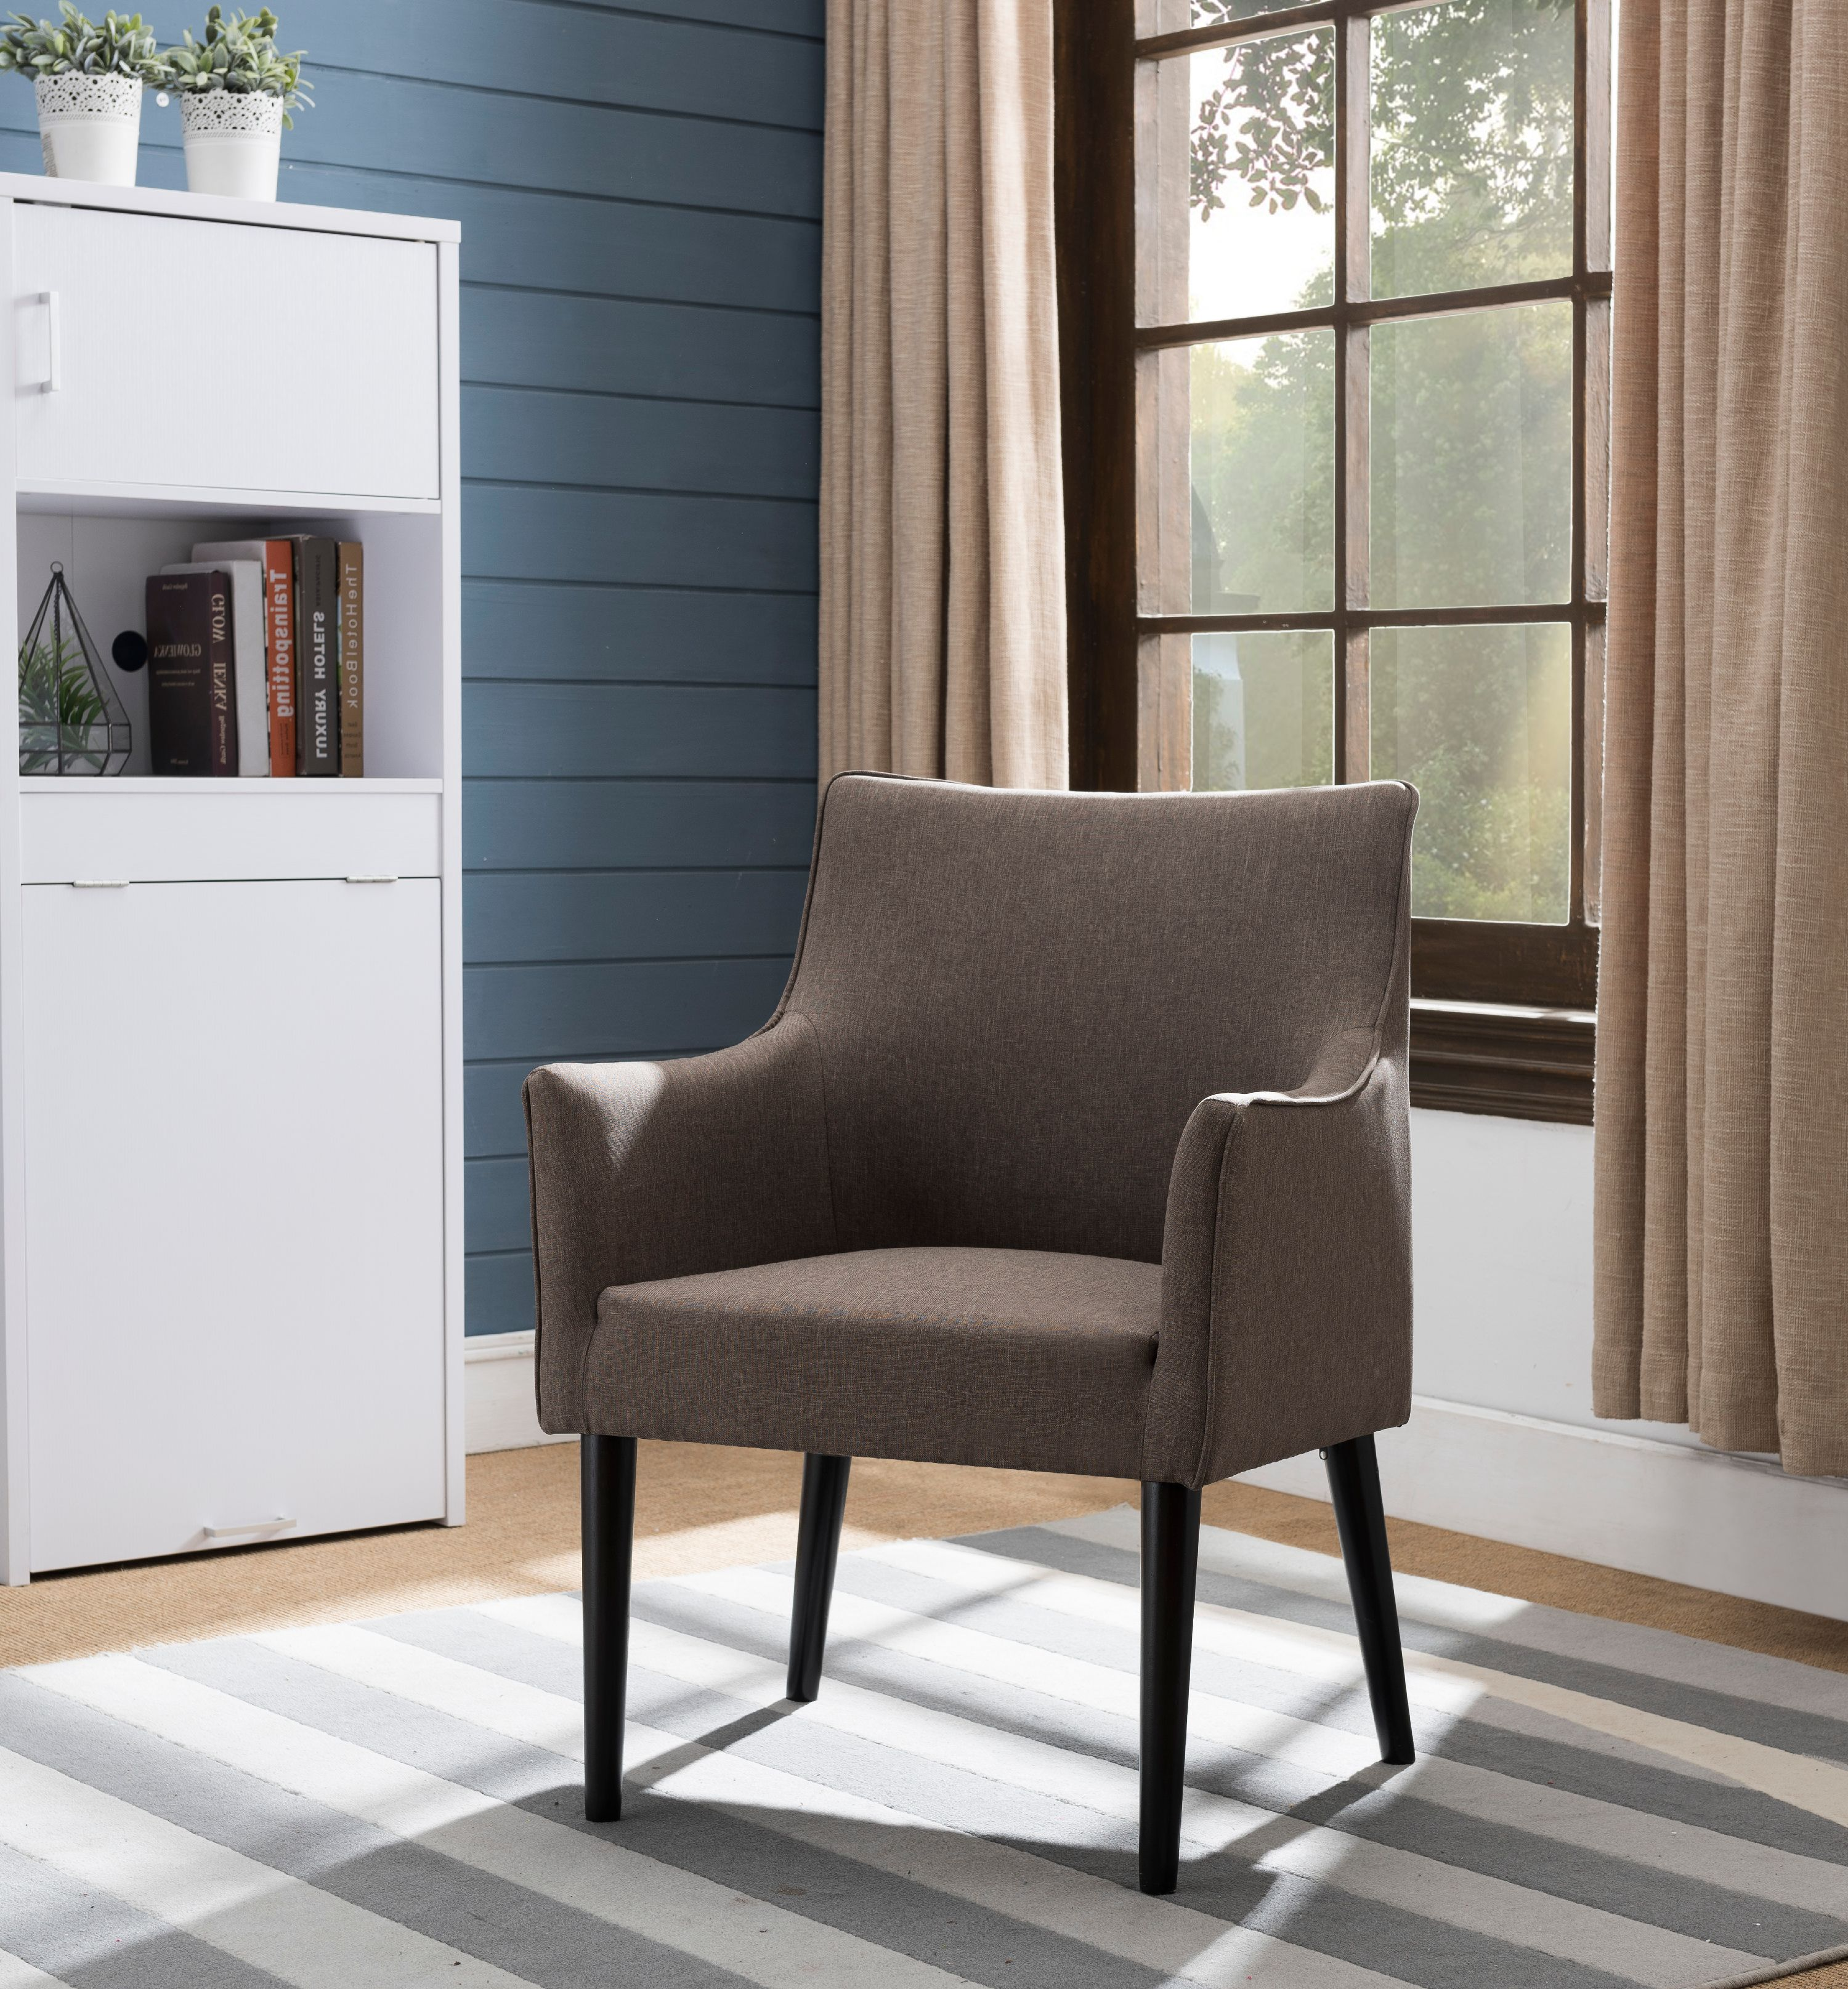 Brown Upholstered Fabric Oversized Accent Living Room Arm Chair With Solid Wood Legs